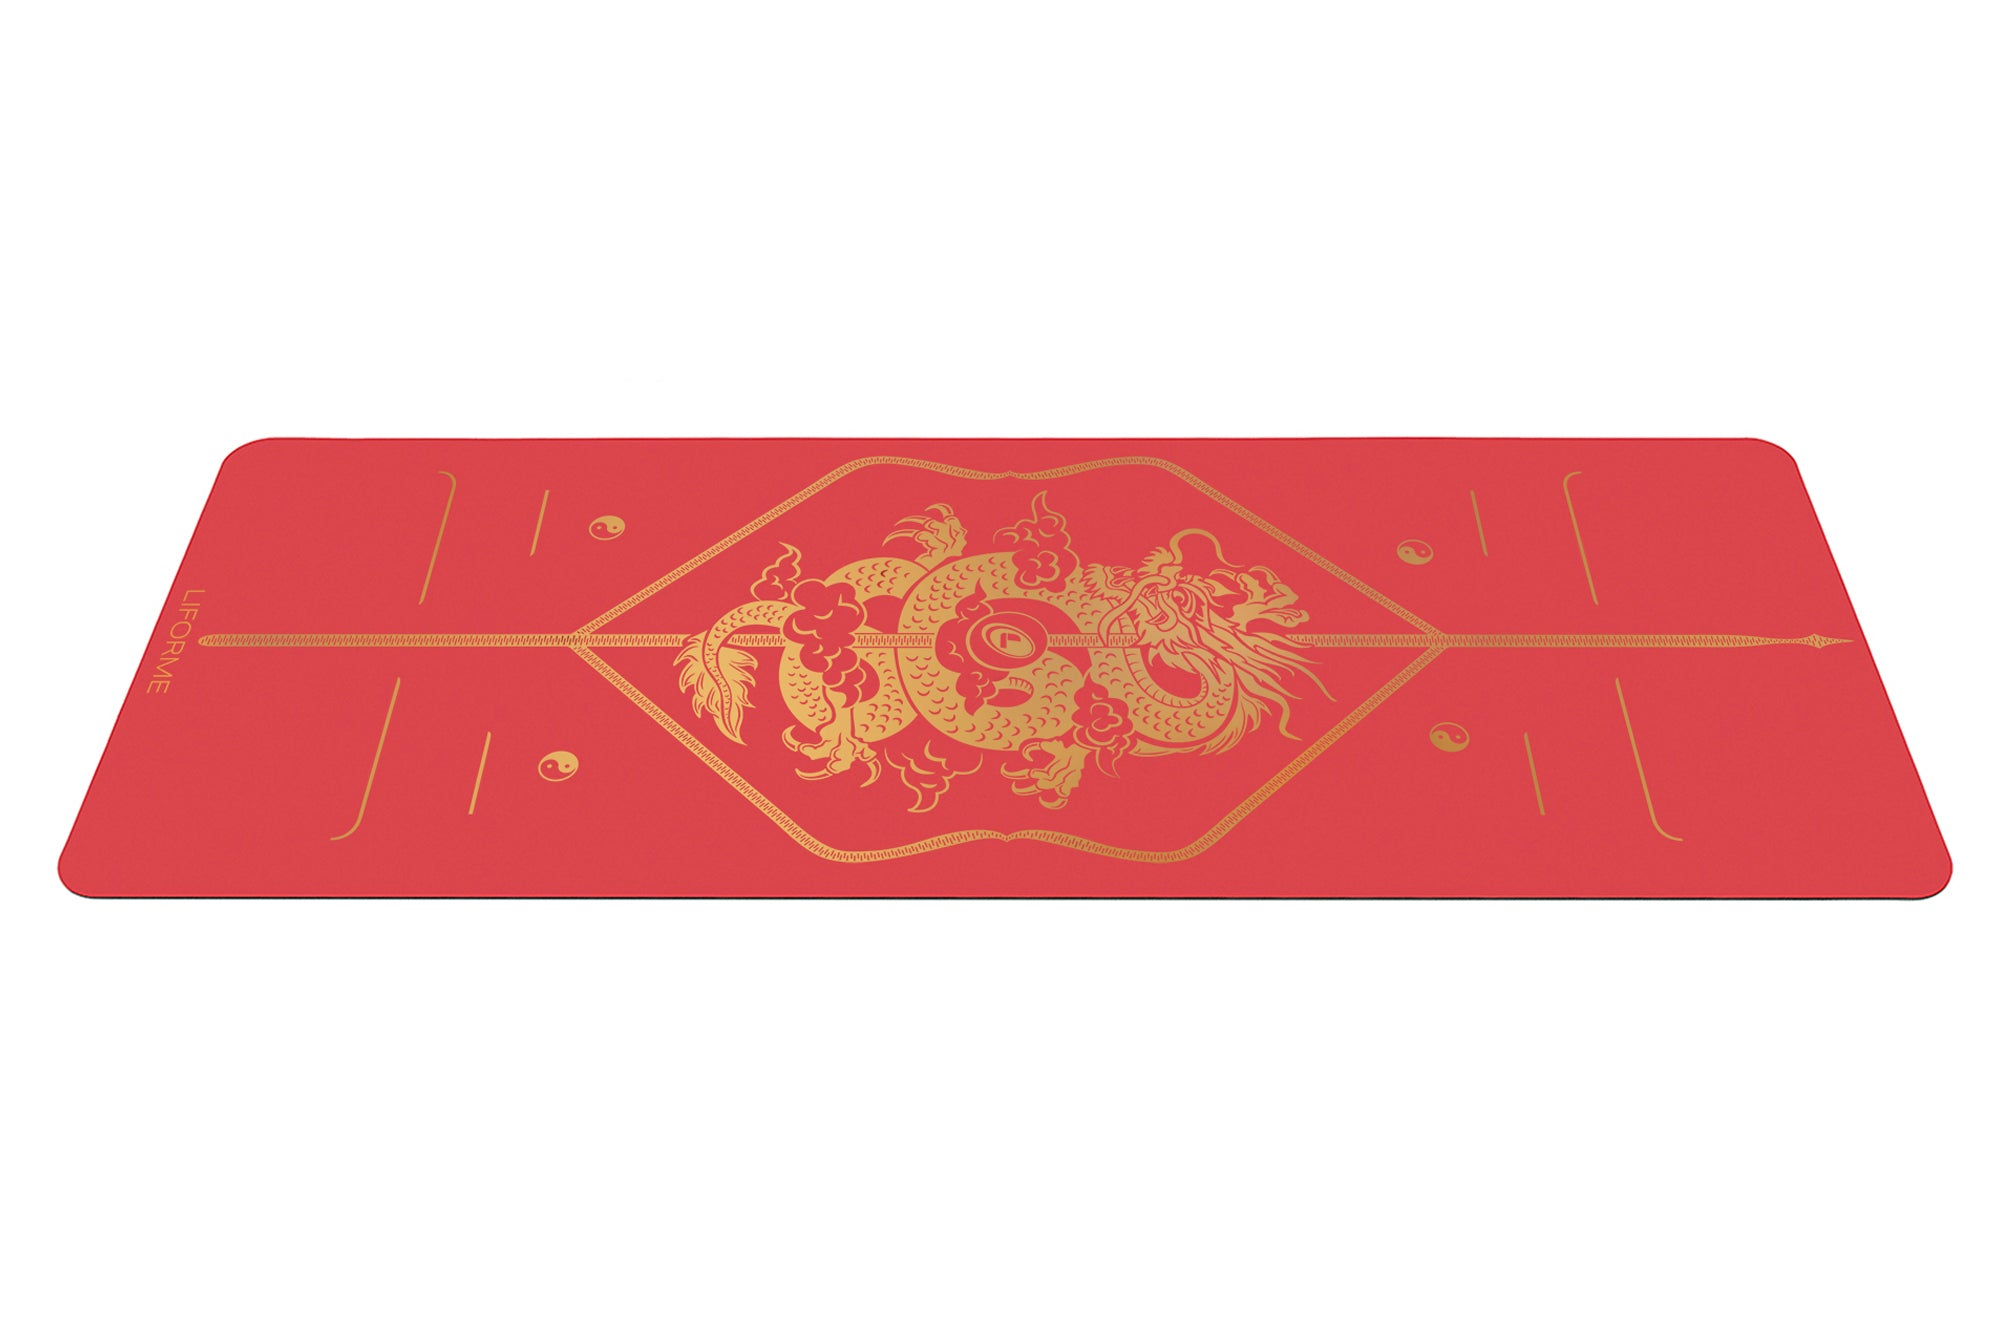 Liforme Dragon & Phoenix Yoga Mats - Dragon